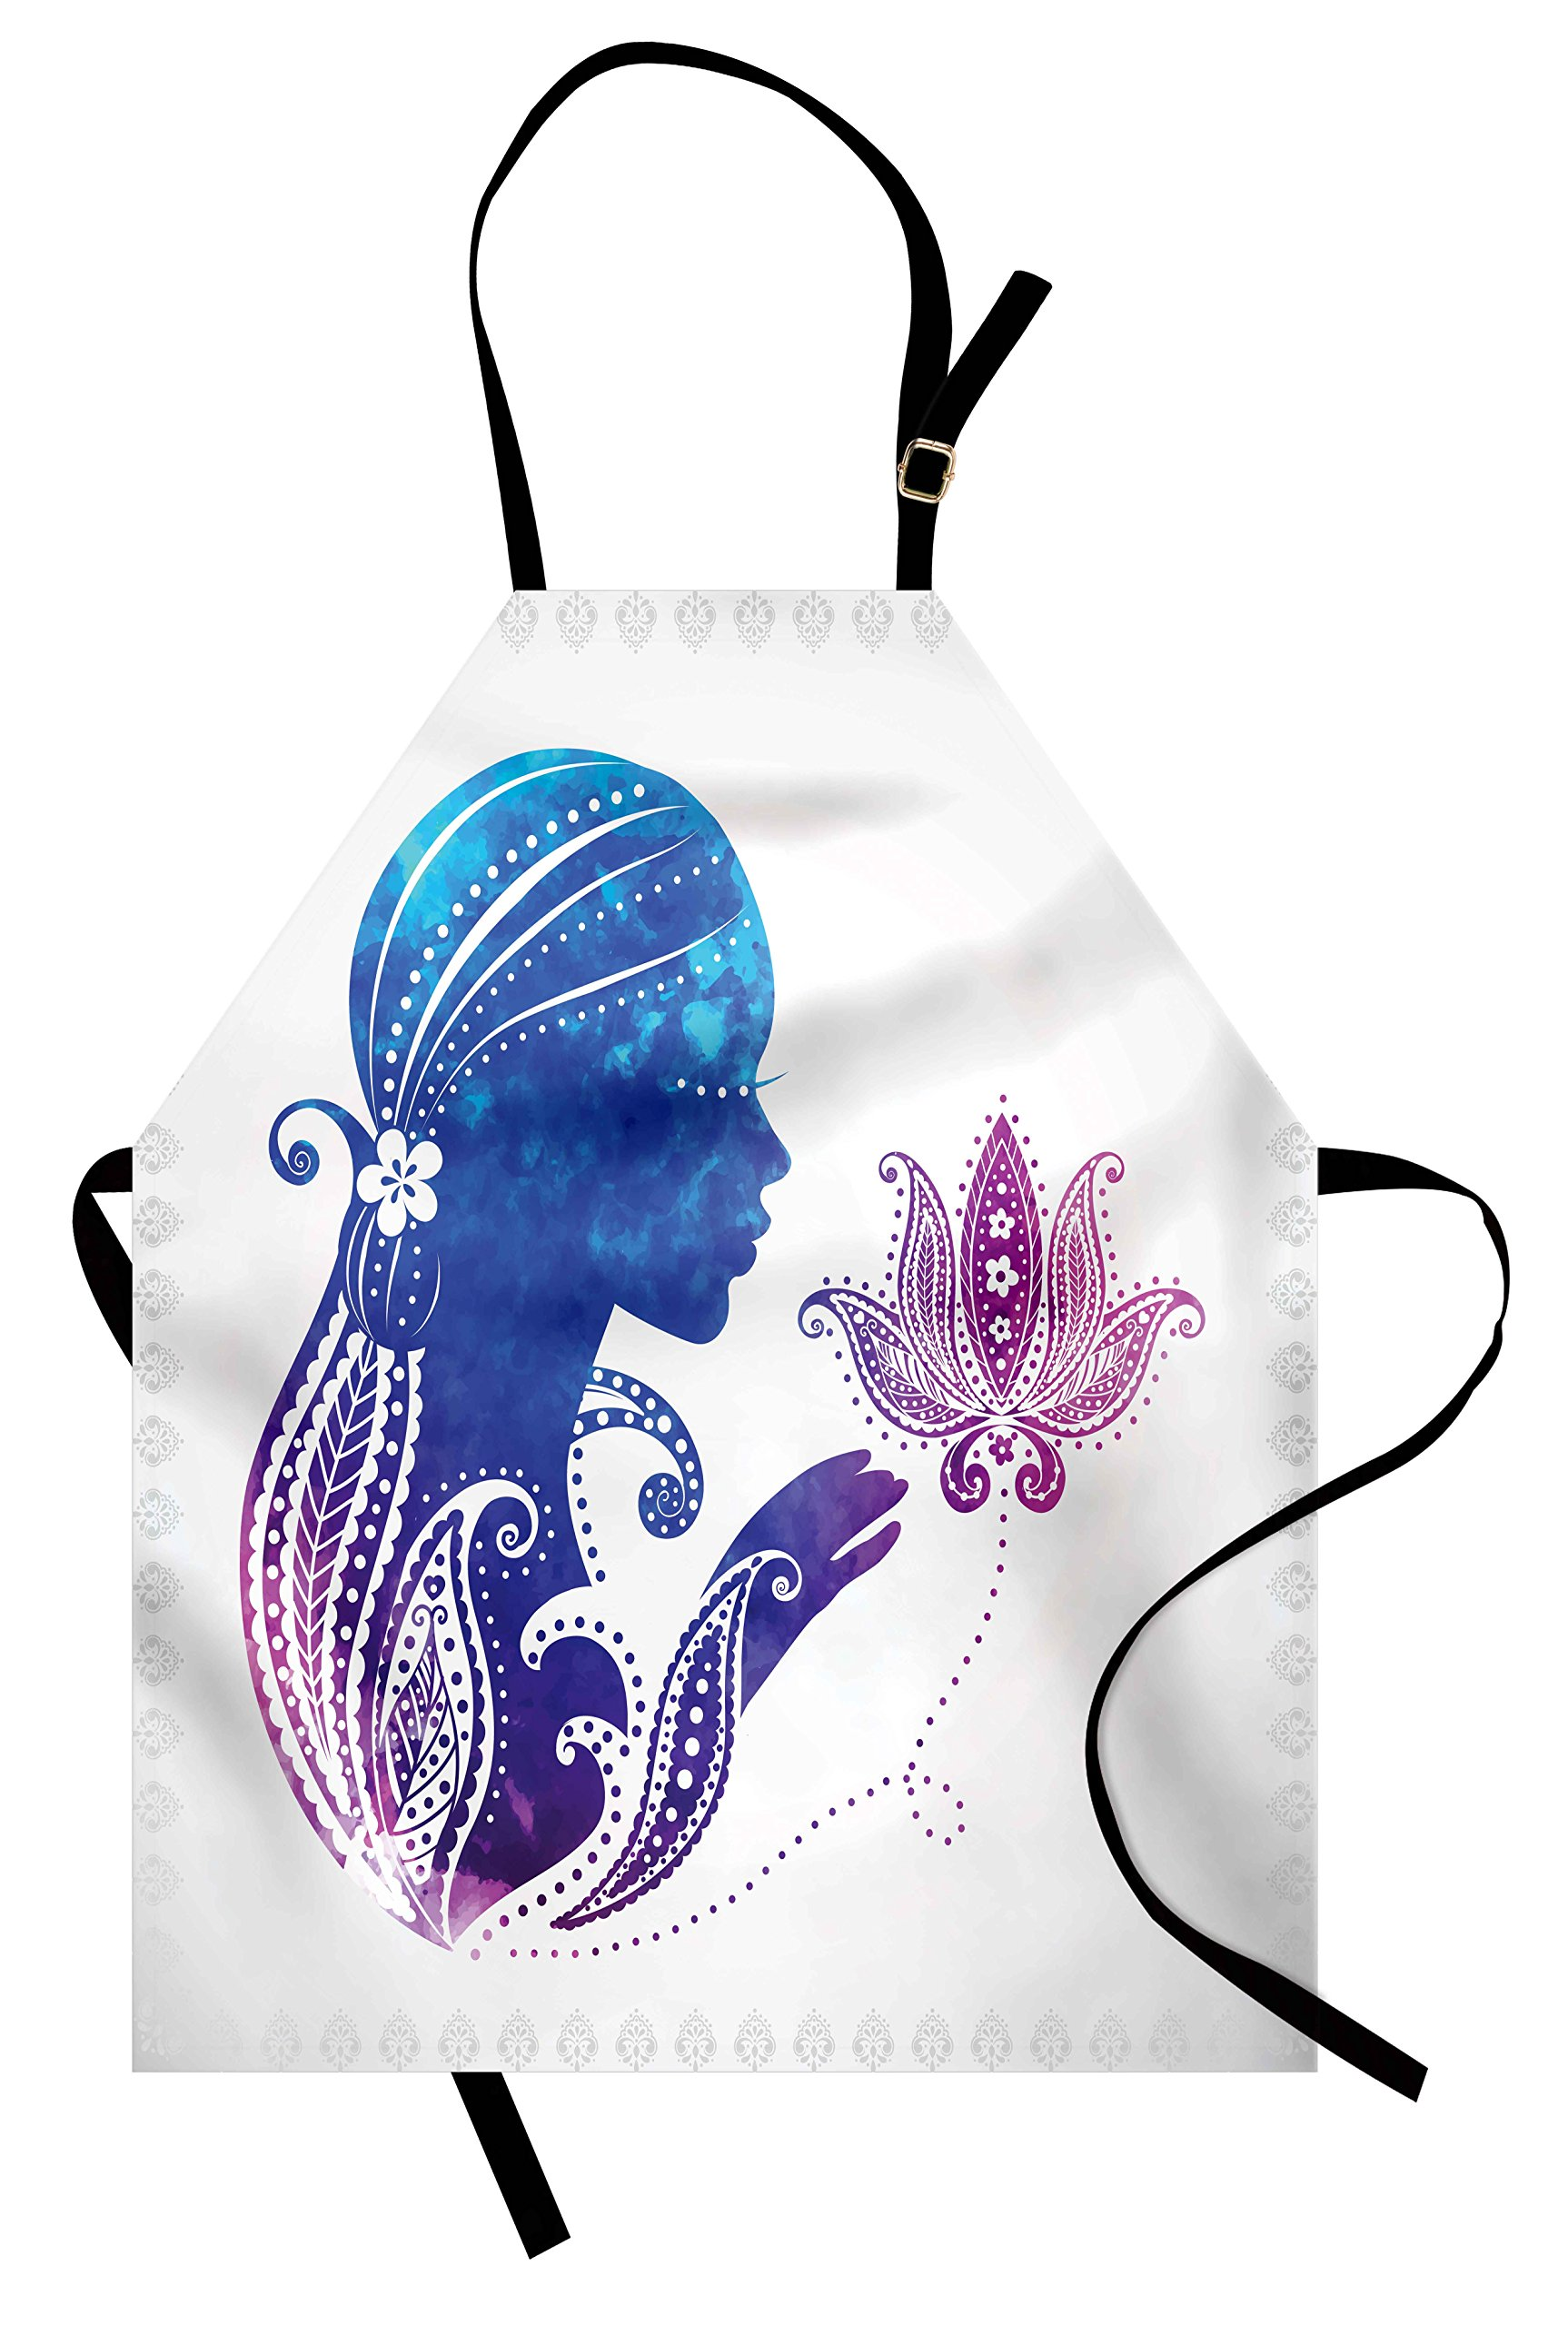 Ambesonne Teen Girls Apron, Girl's Silhouette with Flowers on Her Hair Floral Ornaments Meditation Spa Art, Unisex Kitchen Bib Apron with Adjustable Neck for Cooking Baking Gardening, Purple Blue